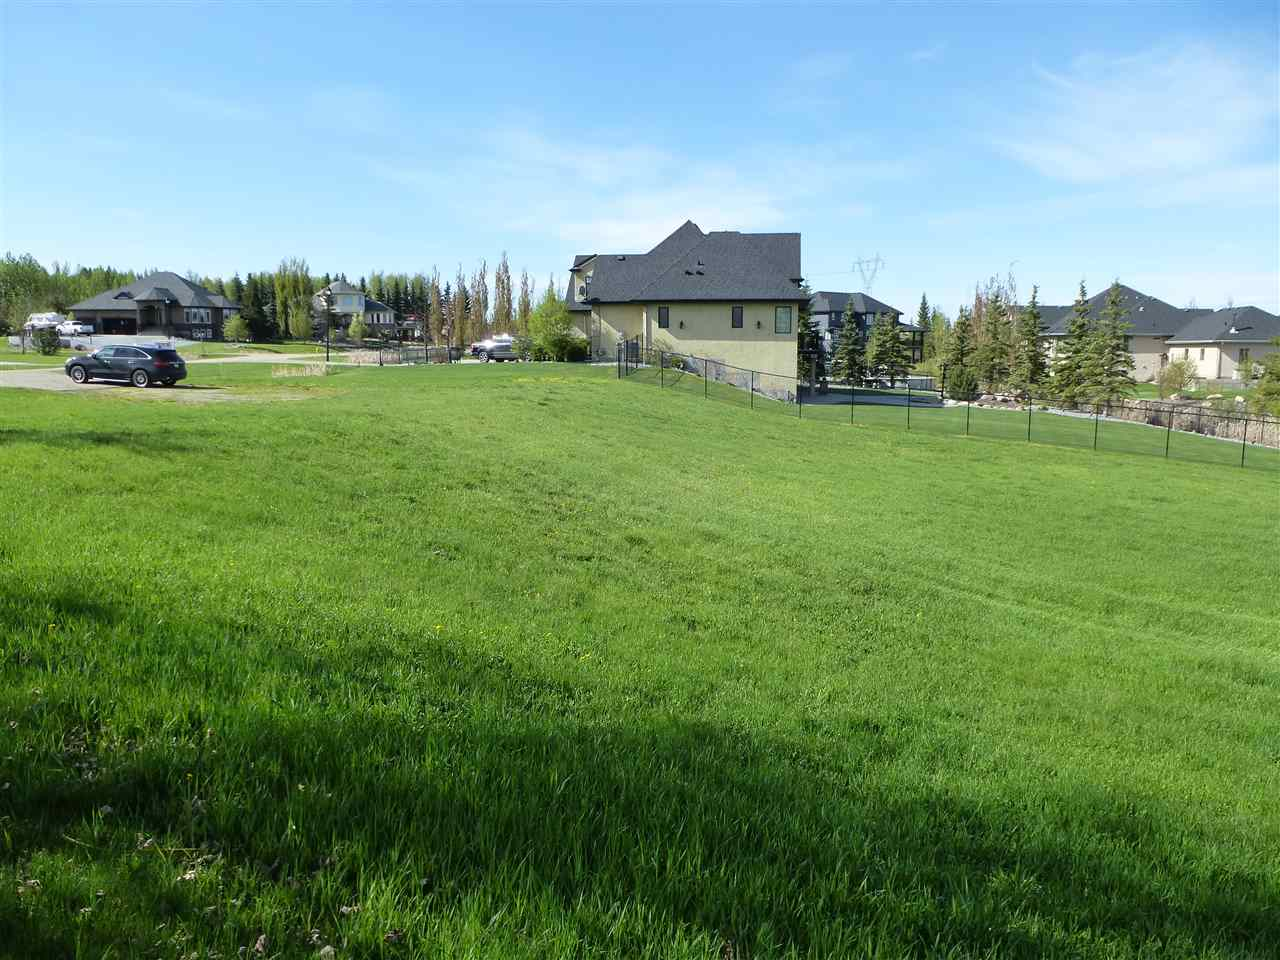 Photo 8: 60 53217 RGE RD 263 Road: Rural Parkland County Rural Land/Vacant Lot for sale : MLS(r) # E4065068